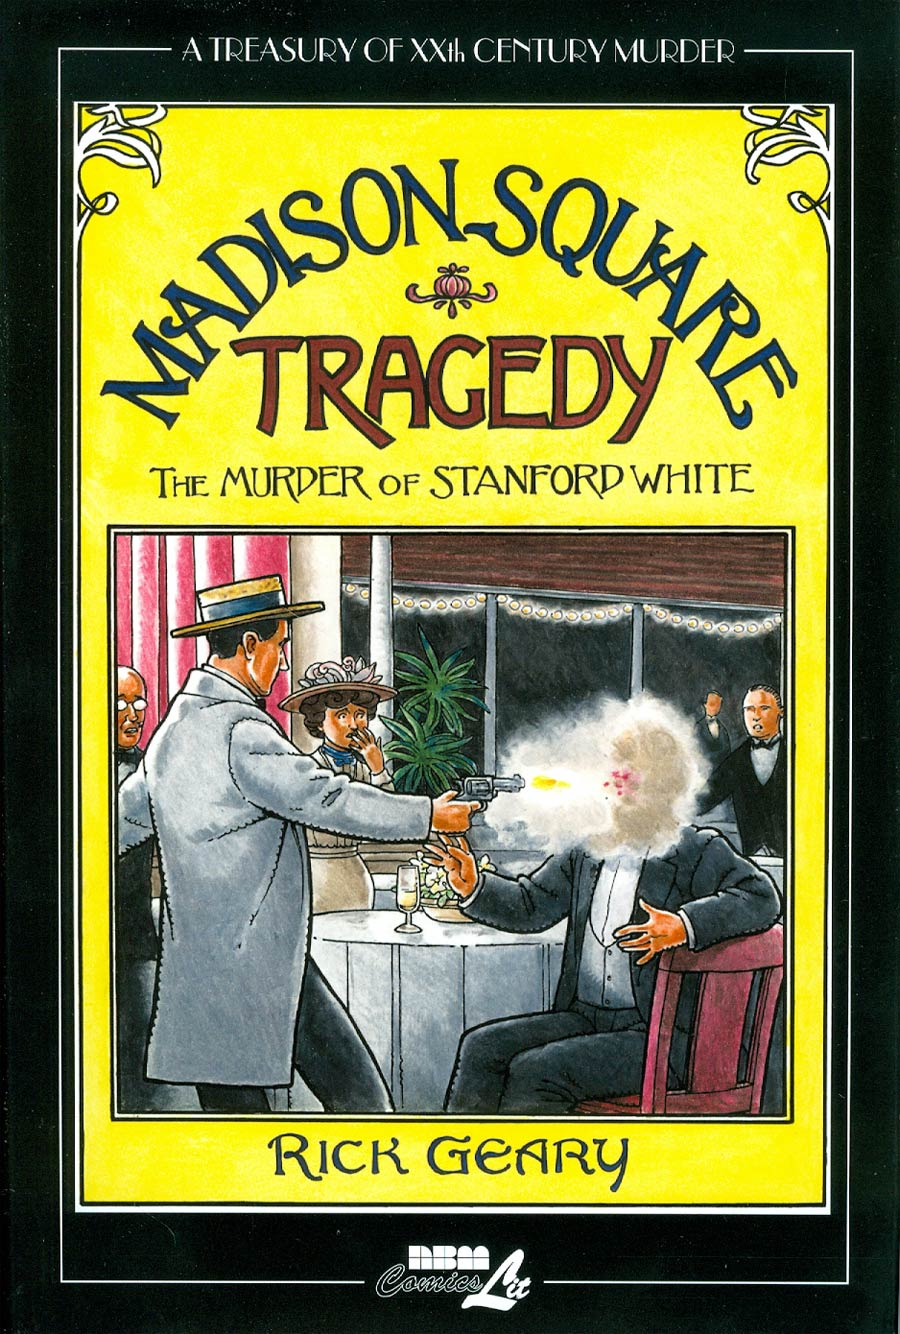 Treasury Of XXth Century Murder Madison Square Tragedy The Murder Of Stanford White HC